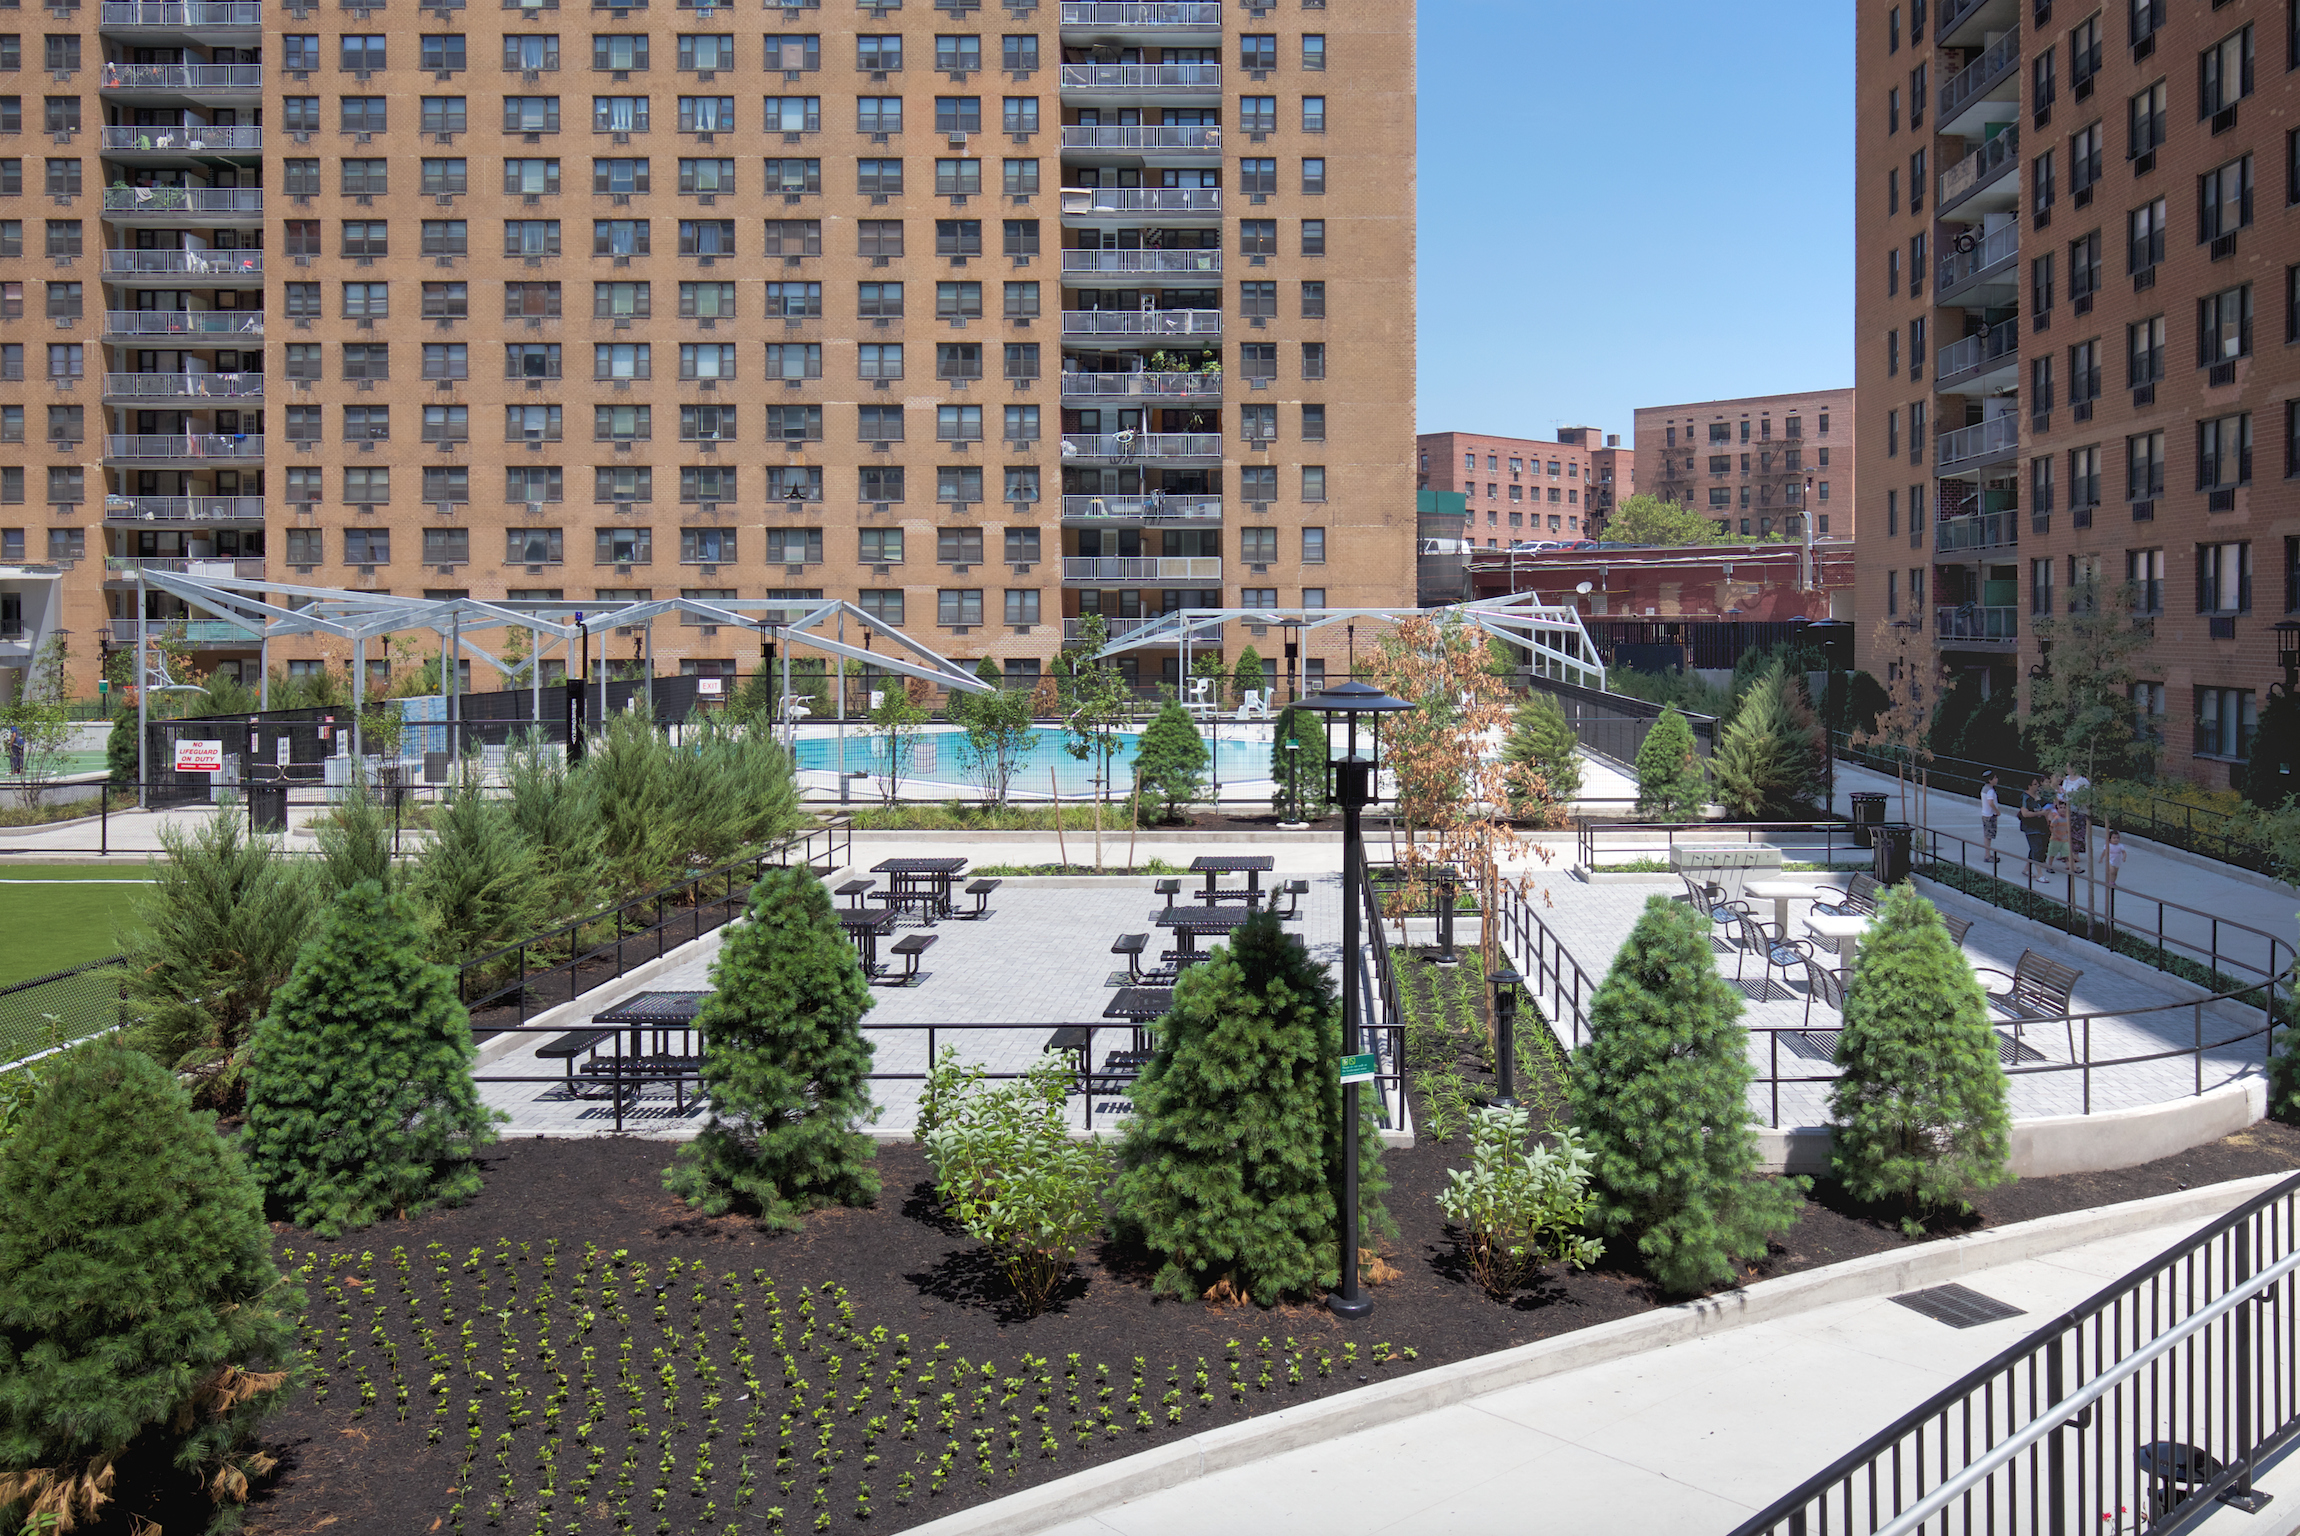 LeFrak City is Back As The Developer Reveals Their $70 Million Redesign